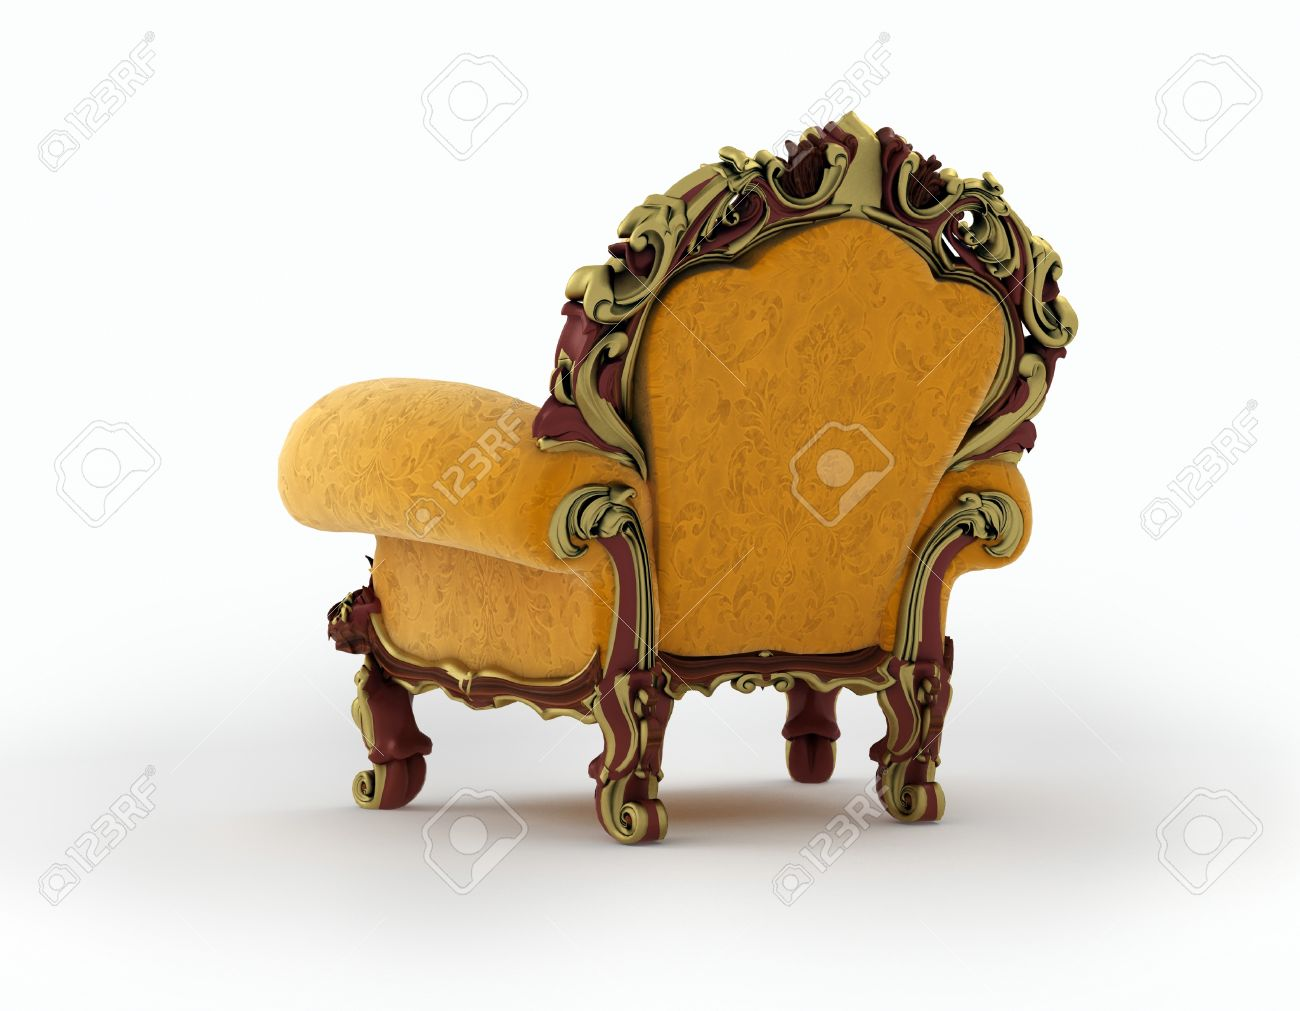 Isolated view of an antique chair 3D render Stock Photo - 8434946